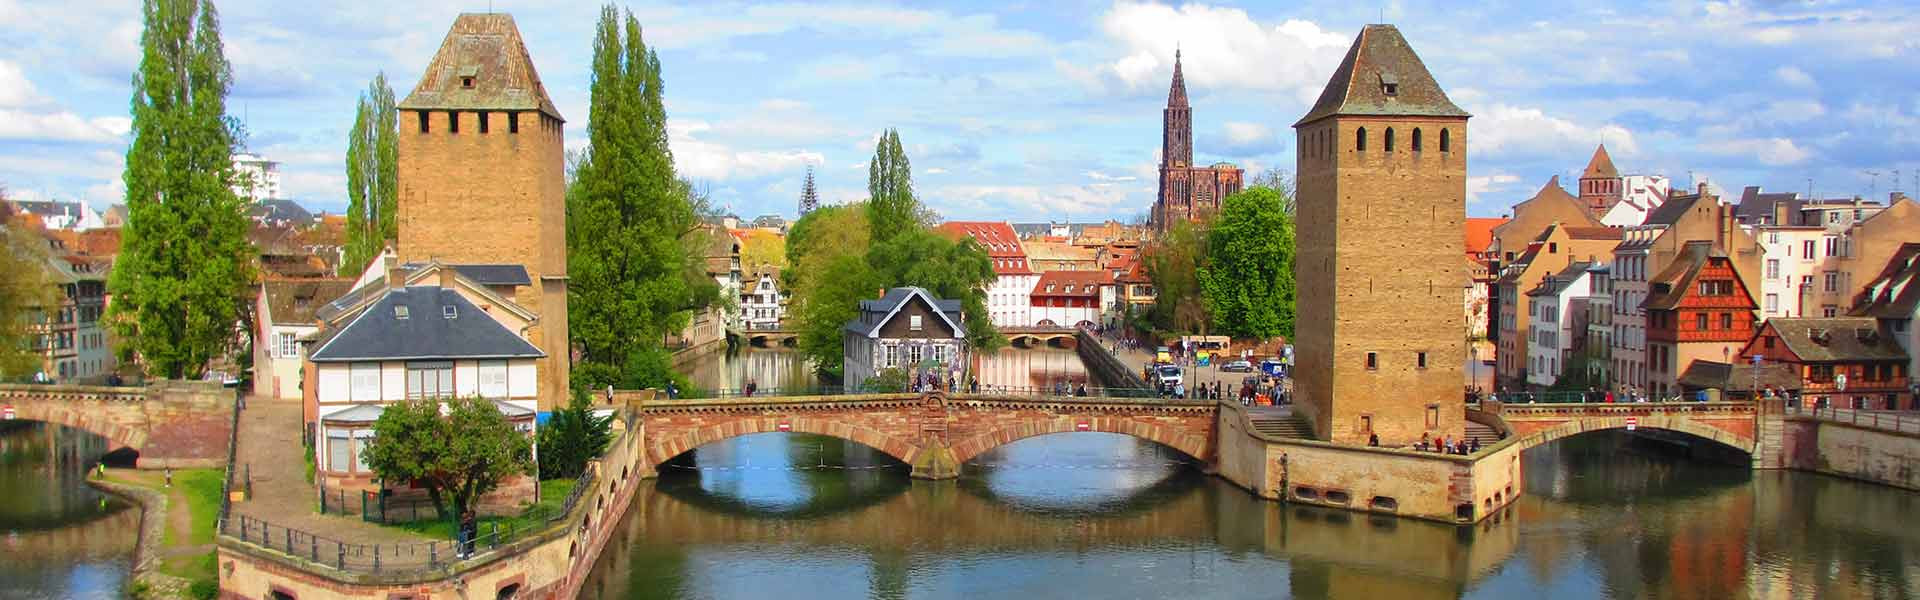 City of Strasbourg near Epinal in Lorraine, France